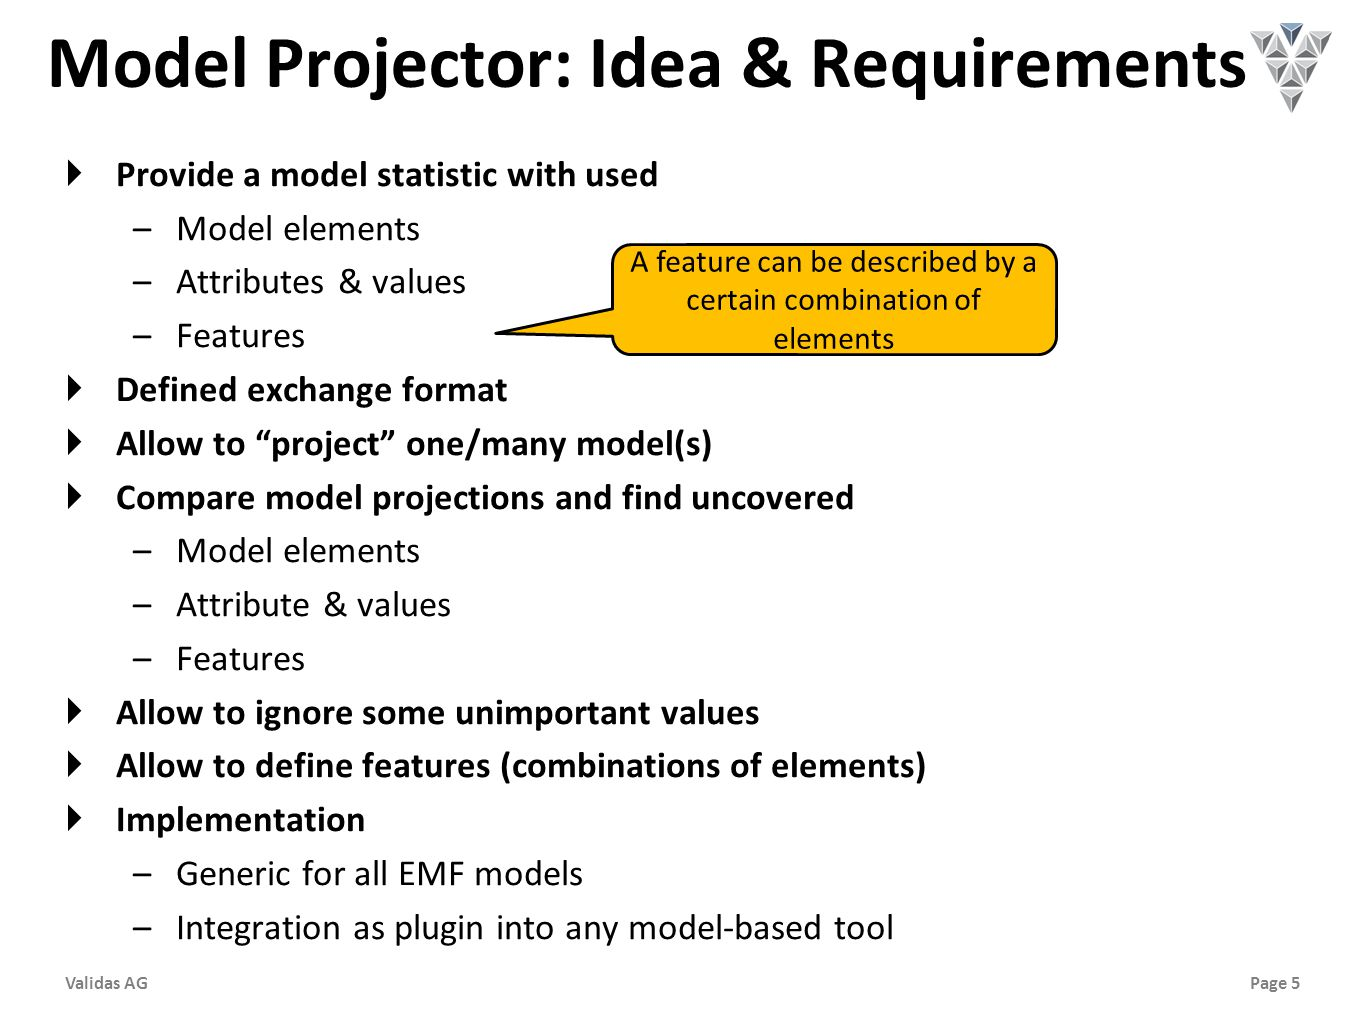 Page 5Validas AG Model Projector: Idea & Requirements  Provide a model statistic with used –Model elements –Attributes & values –Features  Defined exchange format  Allow to project one/many model(s)  Compare model projections and find uncovered –Model elements –Attribute & values –Features  Allow to ignore some unimportant values  Allow to define features (combinations of elements)  Implementation –Generic for all EMF models –Integration as plugin into any model-based tool A feature can be described by a certain combination of elements